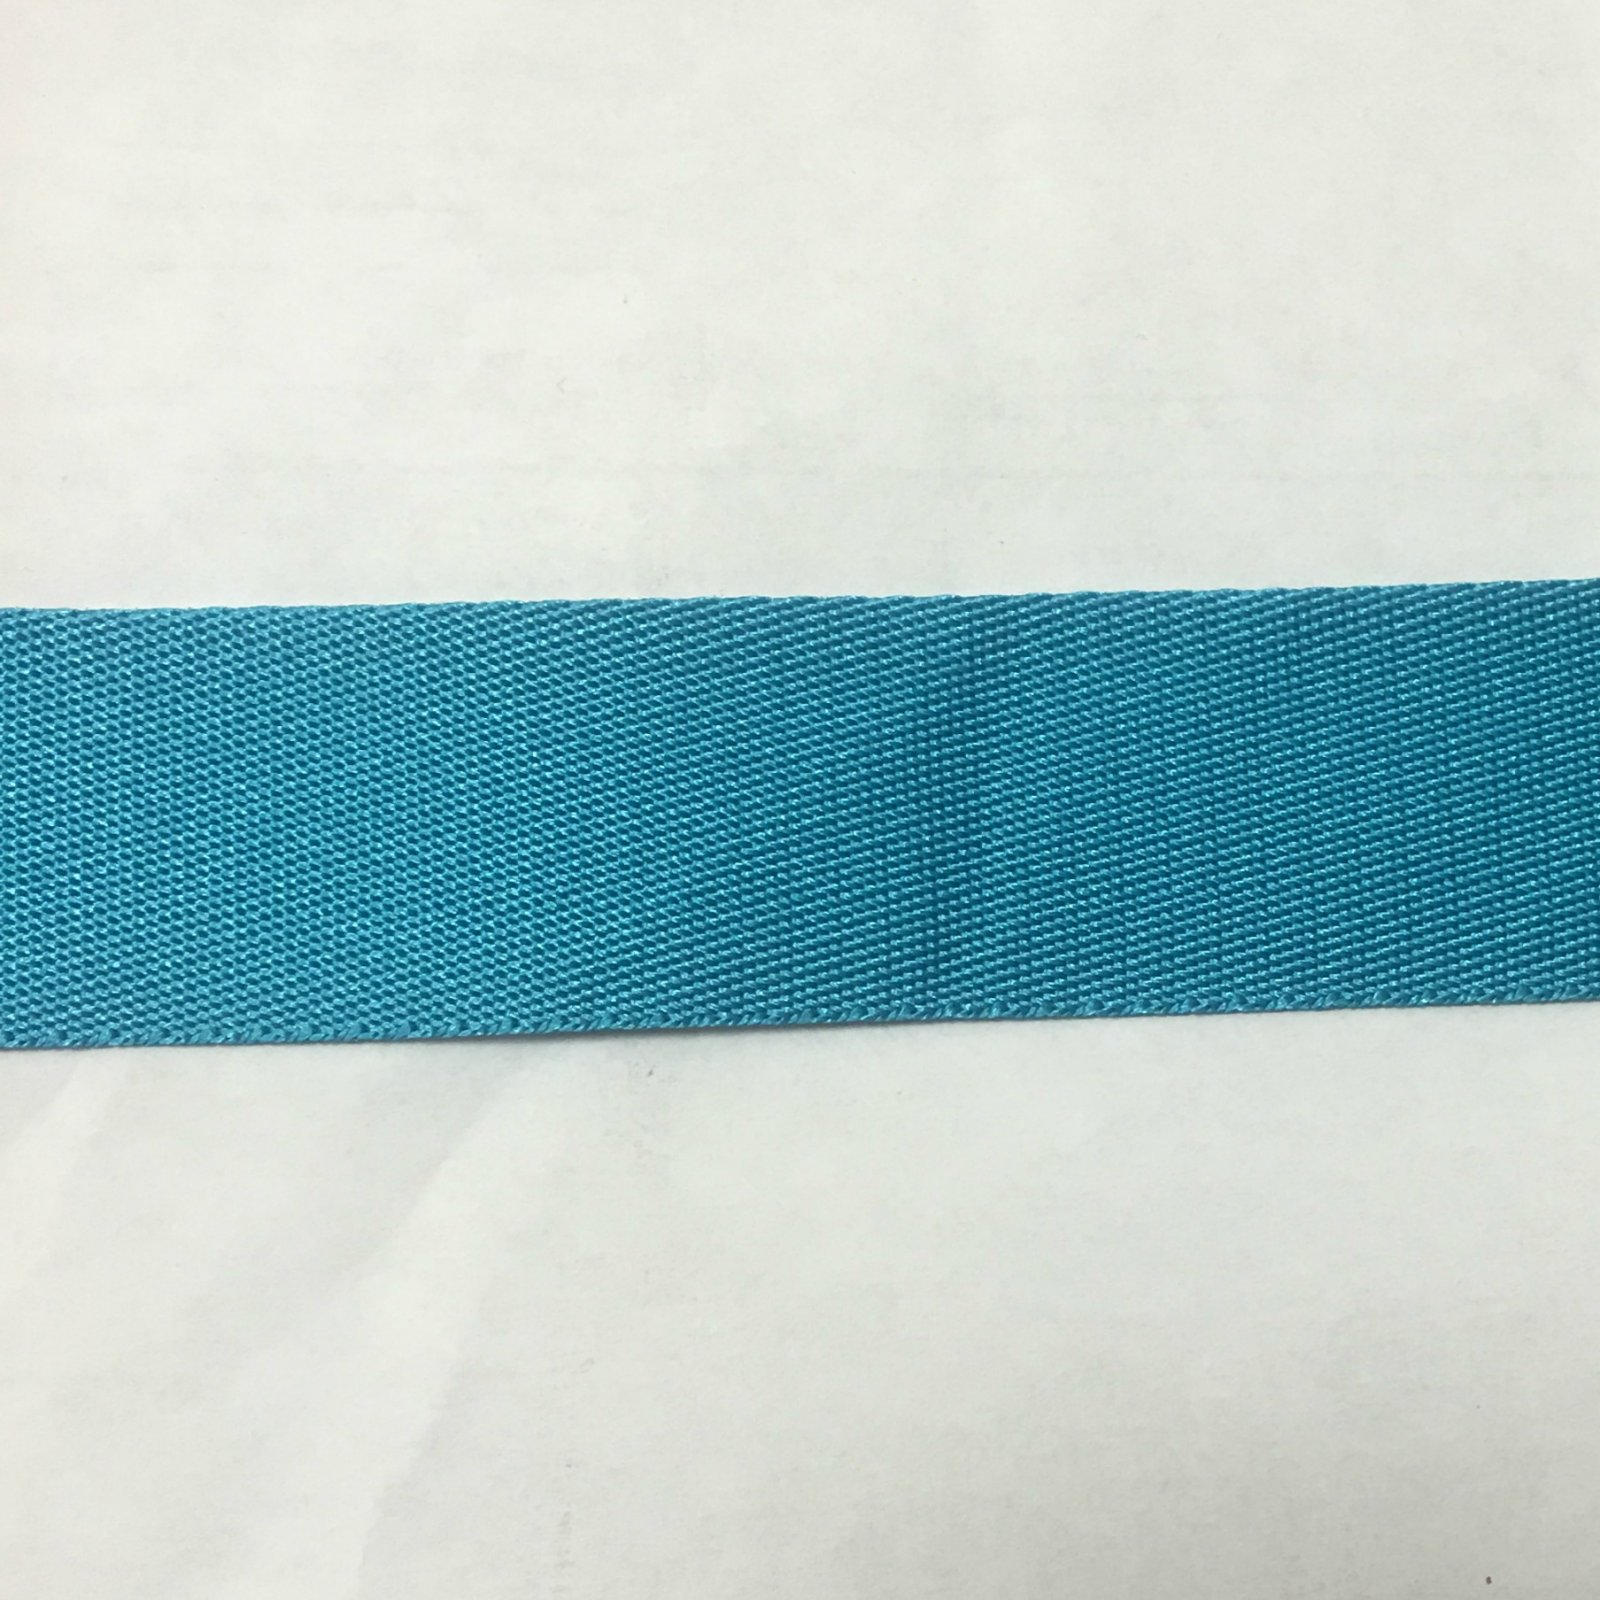 Products from Abroad - 1 3/8 Webbing - Aqua